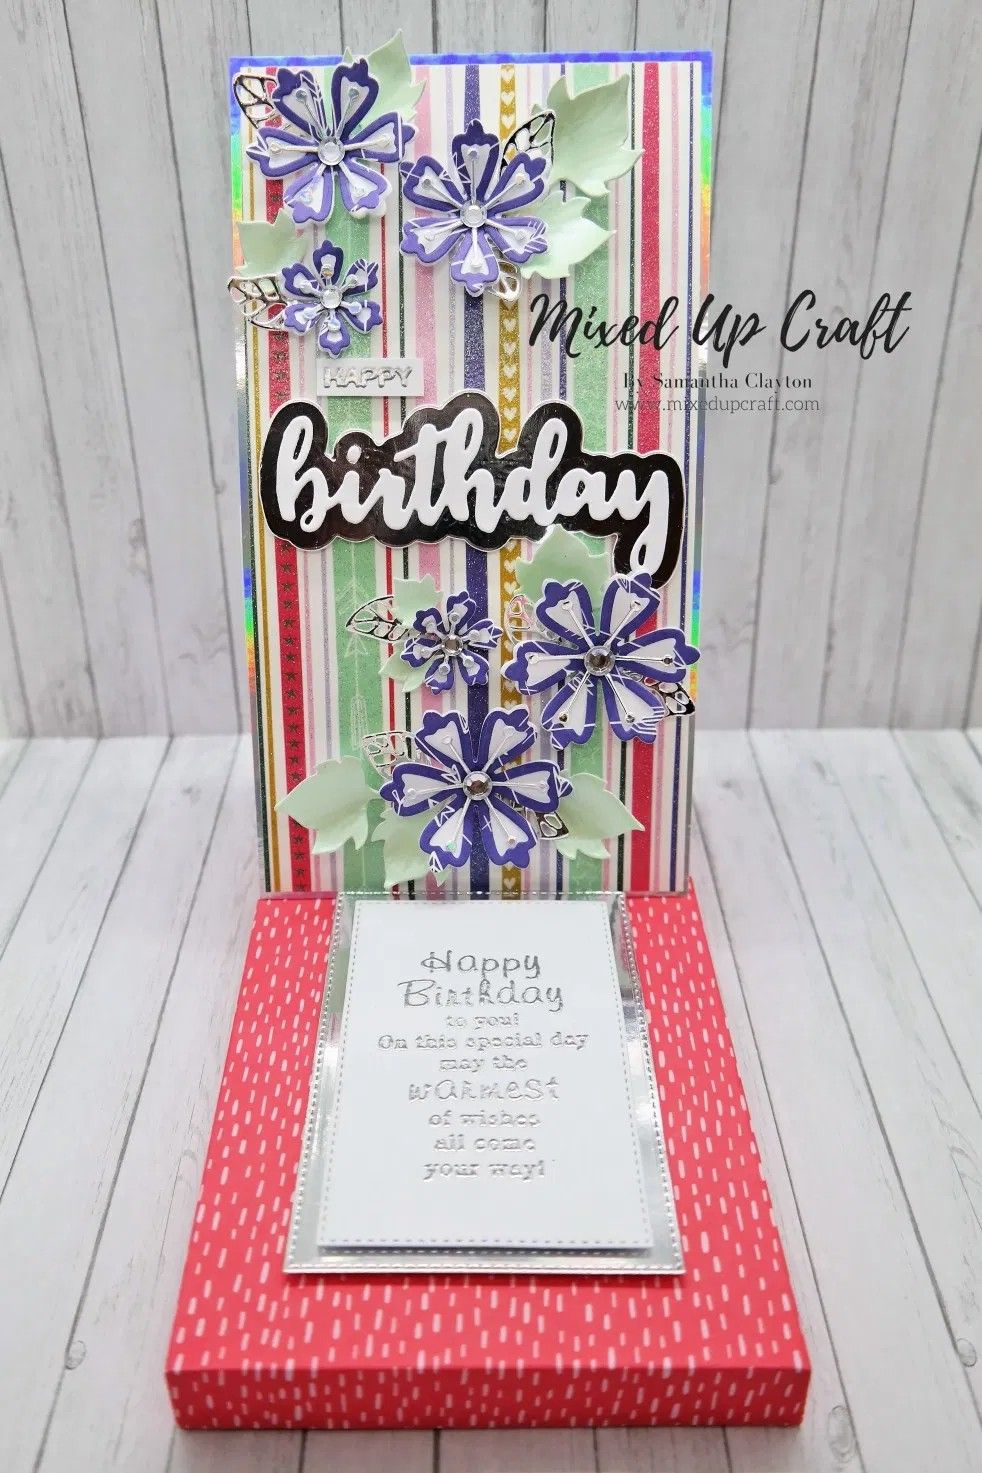 Pin by Mixed Up Craft on Mixed Up Craft Blog (With images